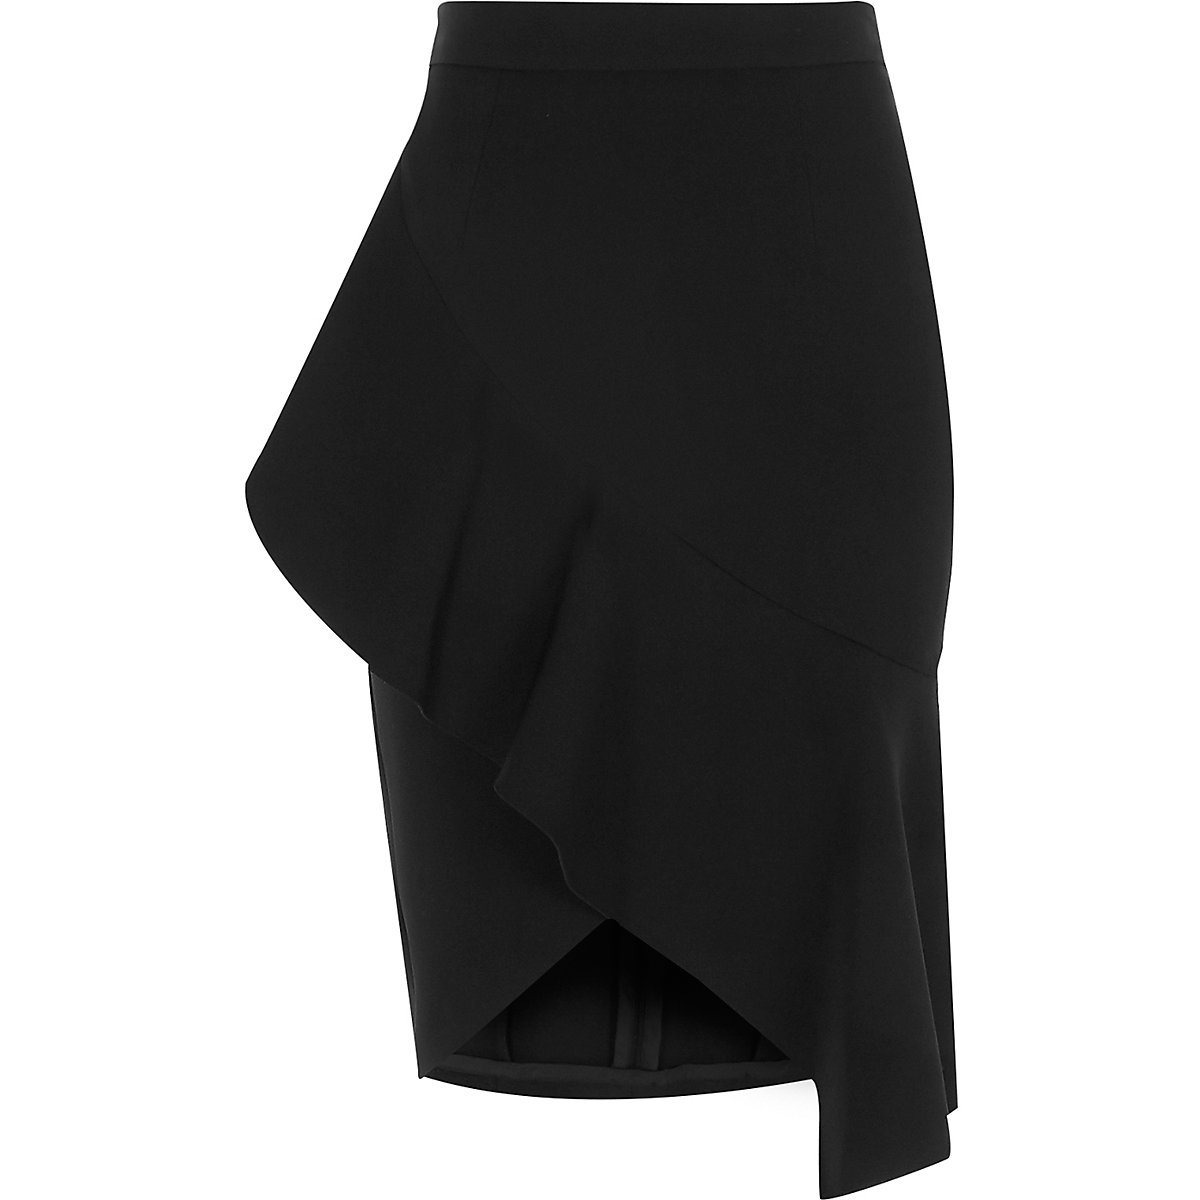 Black asymmetric frill pencil skirt - Midi Skirts - Skirts - women 62cf0b24f